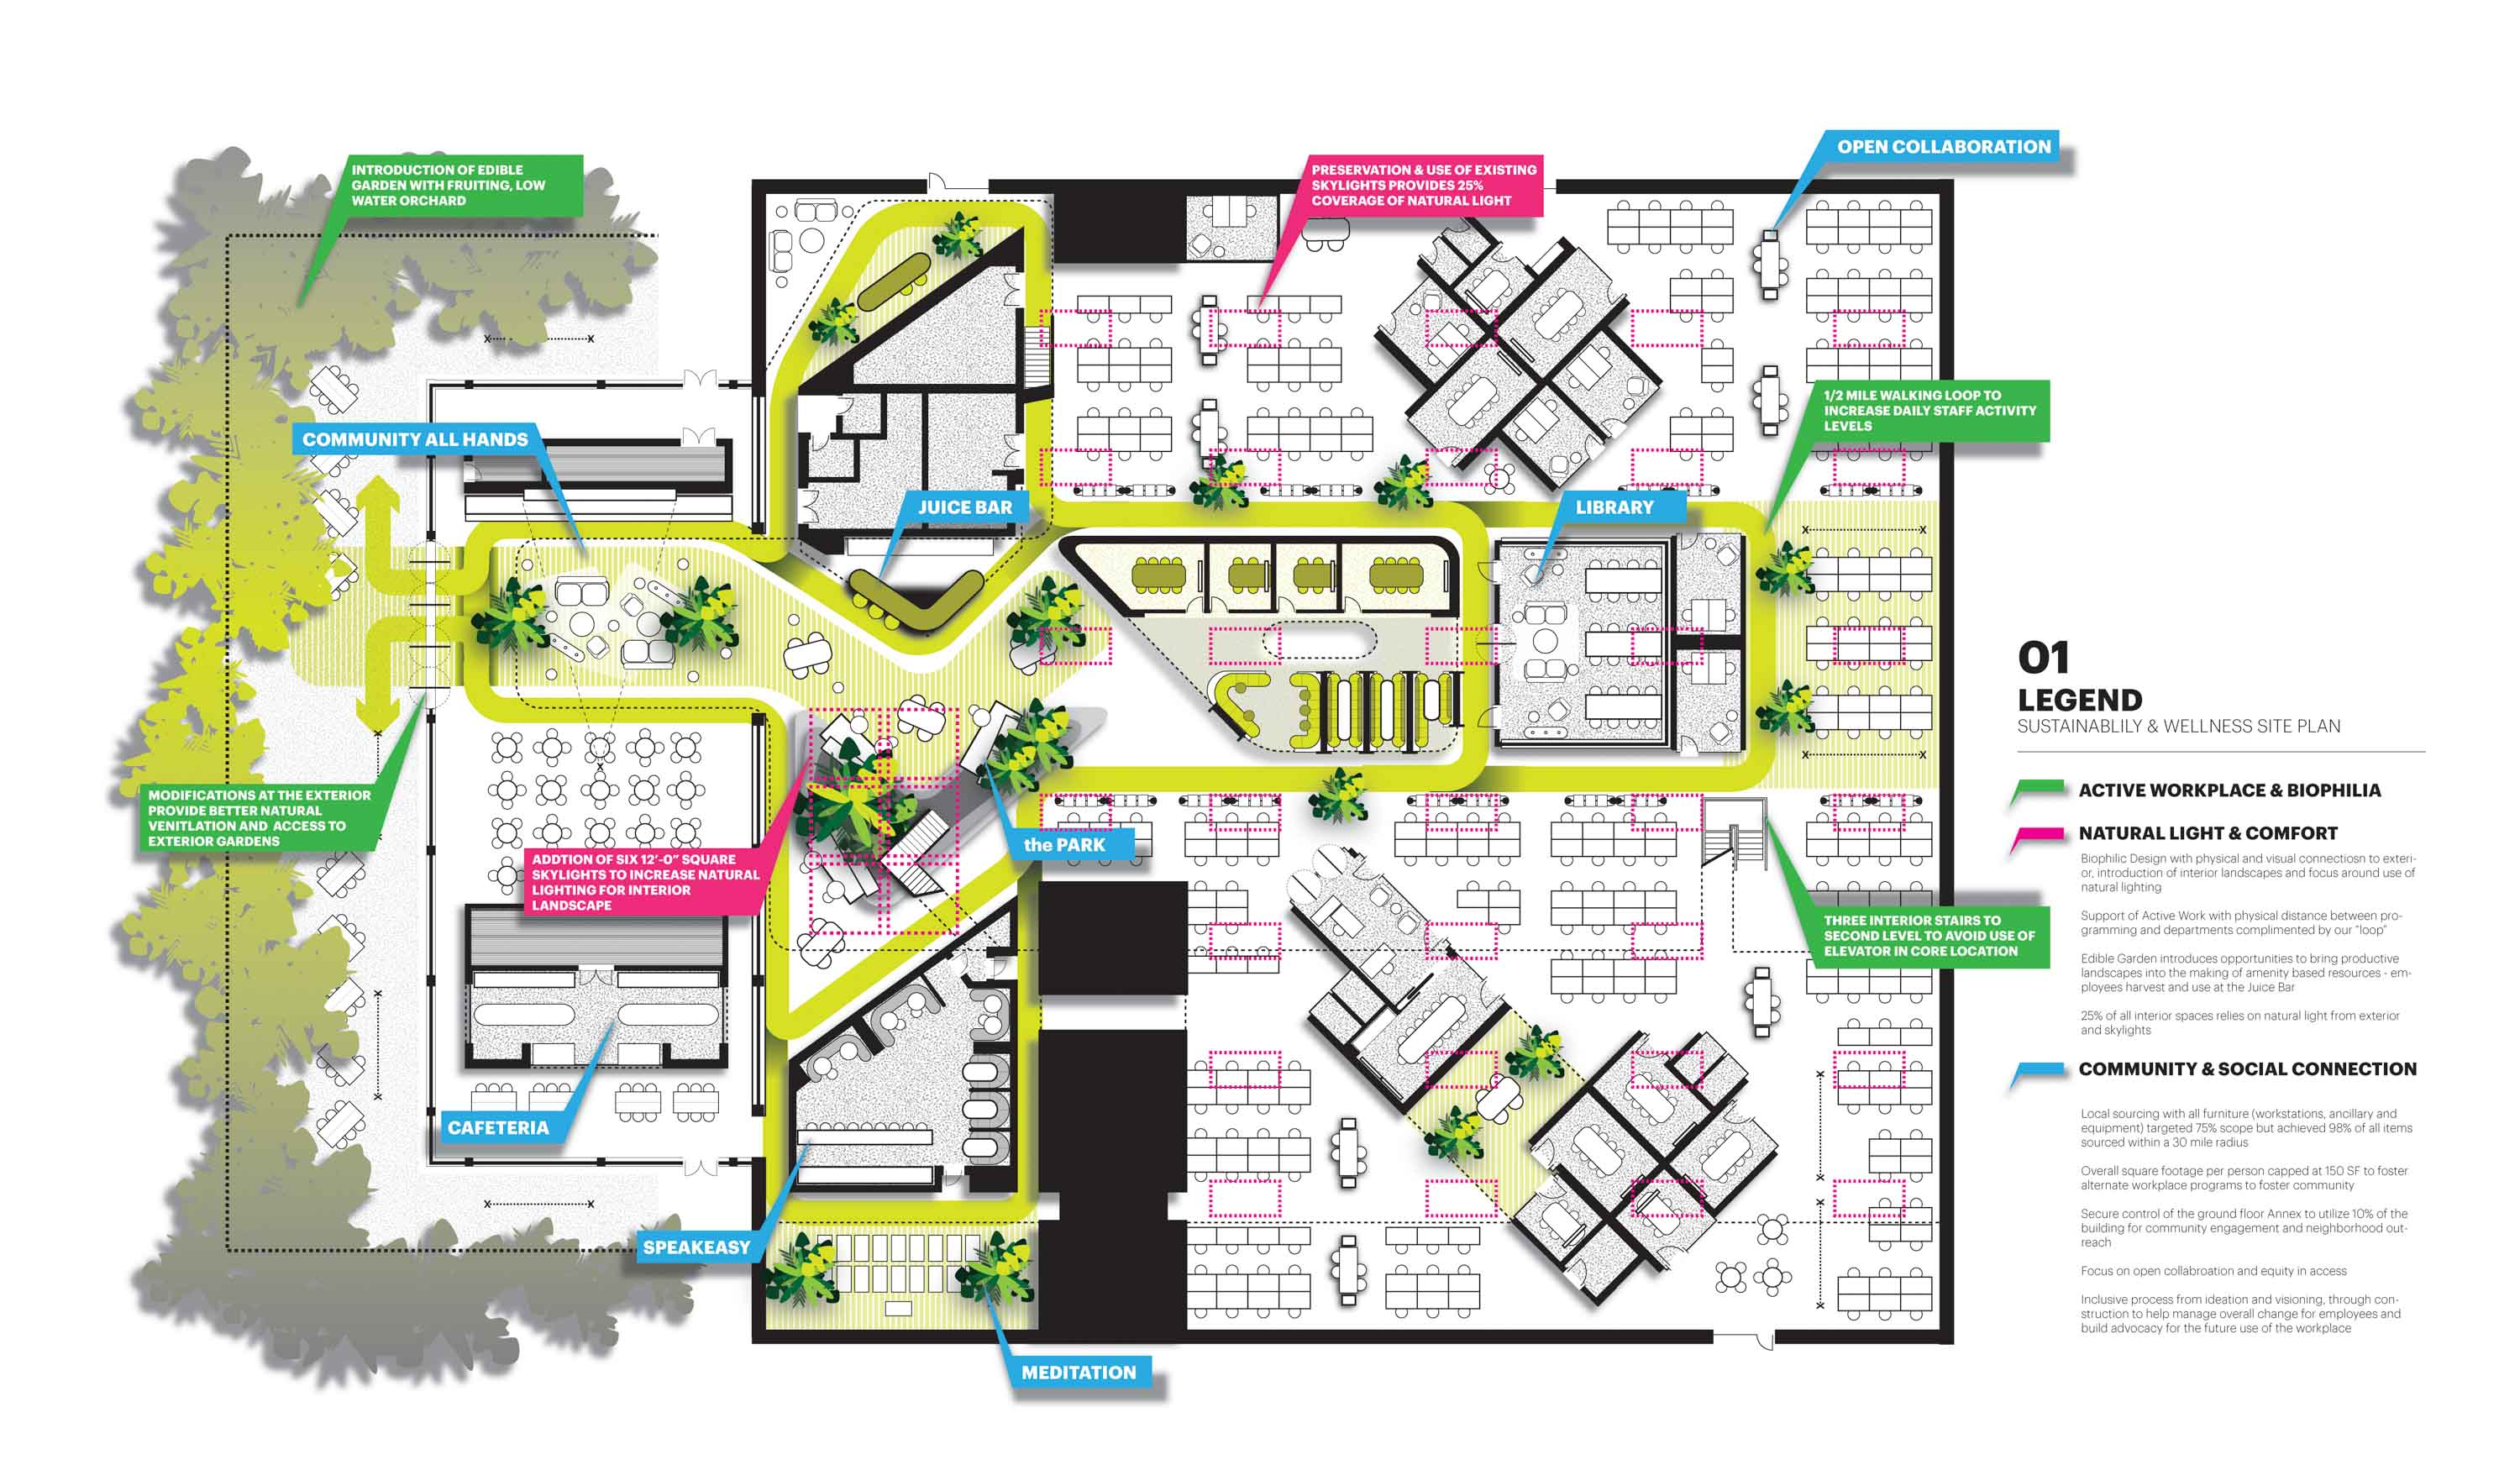 GoodRx floorplan showing sustainability and wellness features